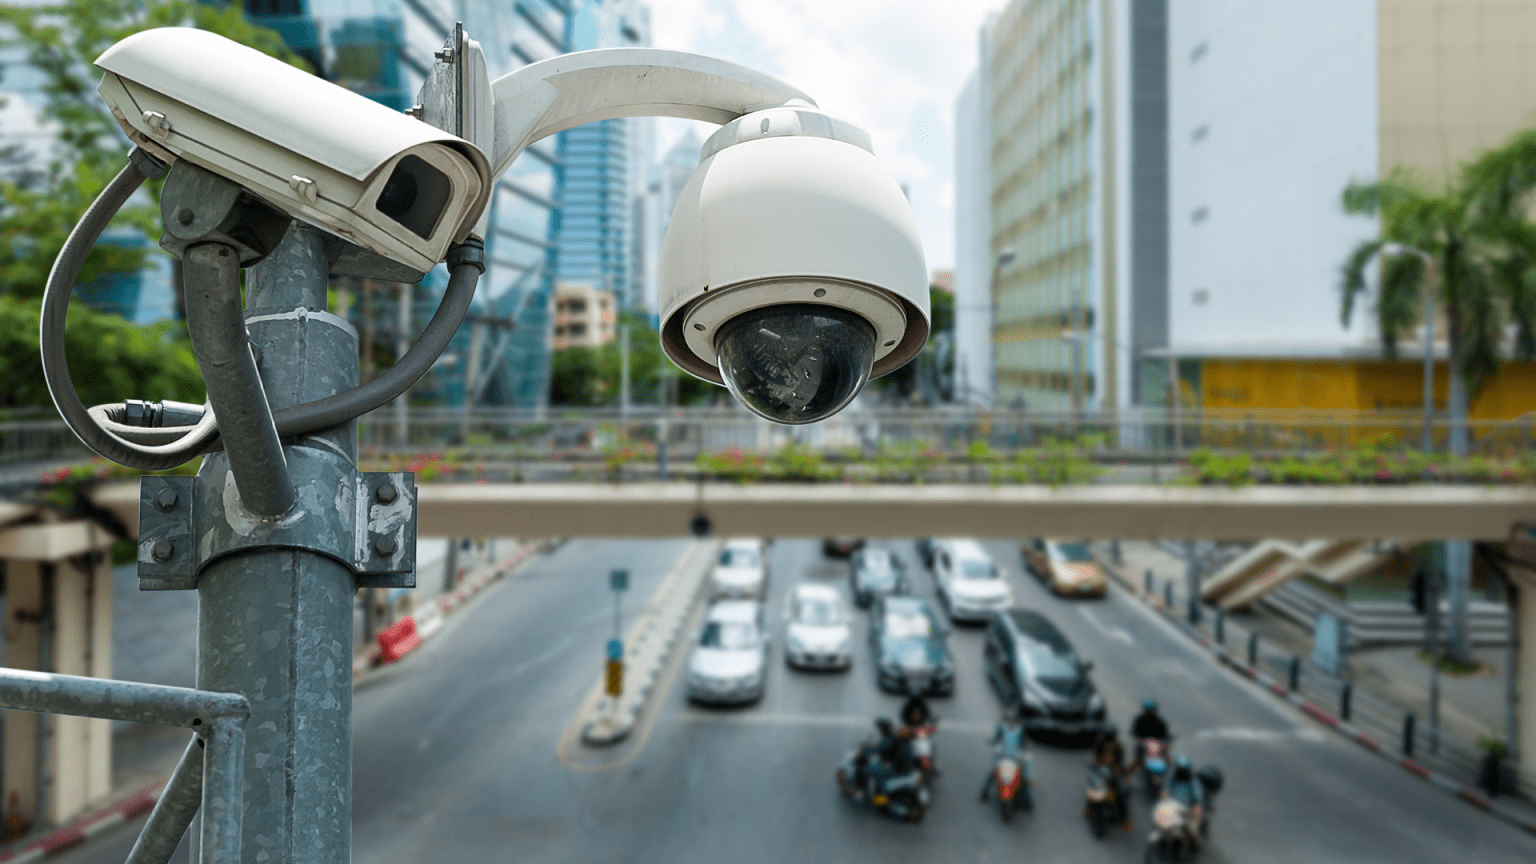 Artificially Intelligent Security and Surveillance